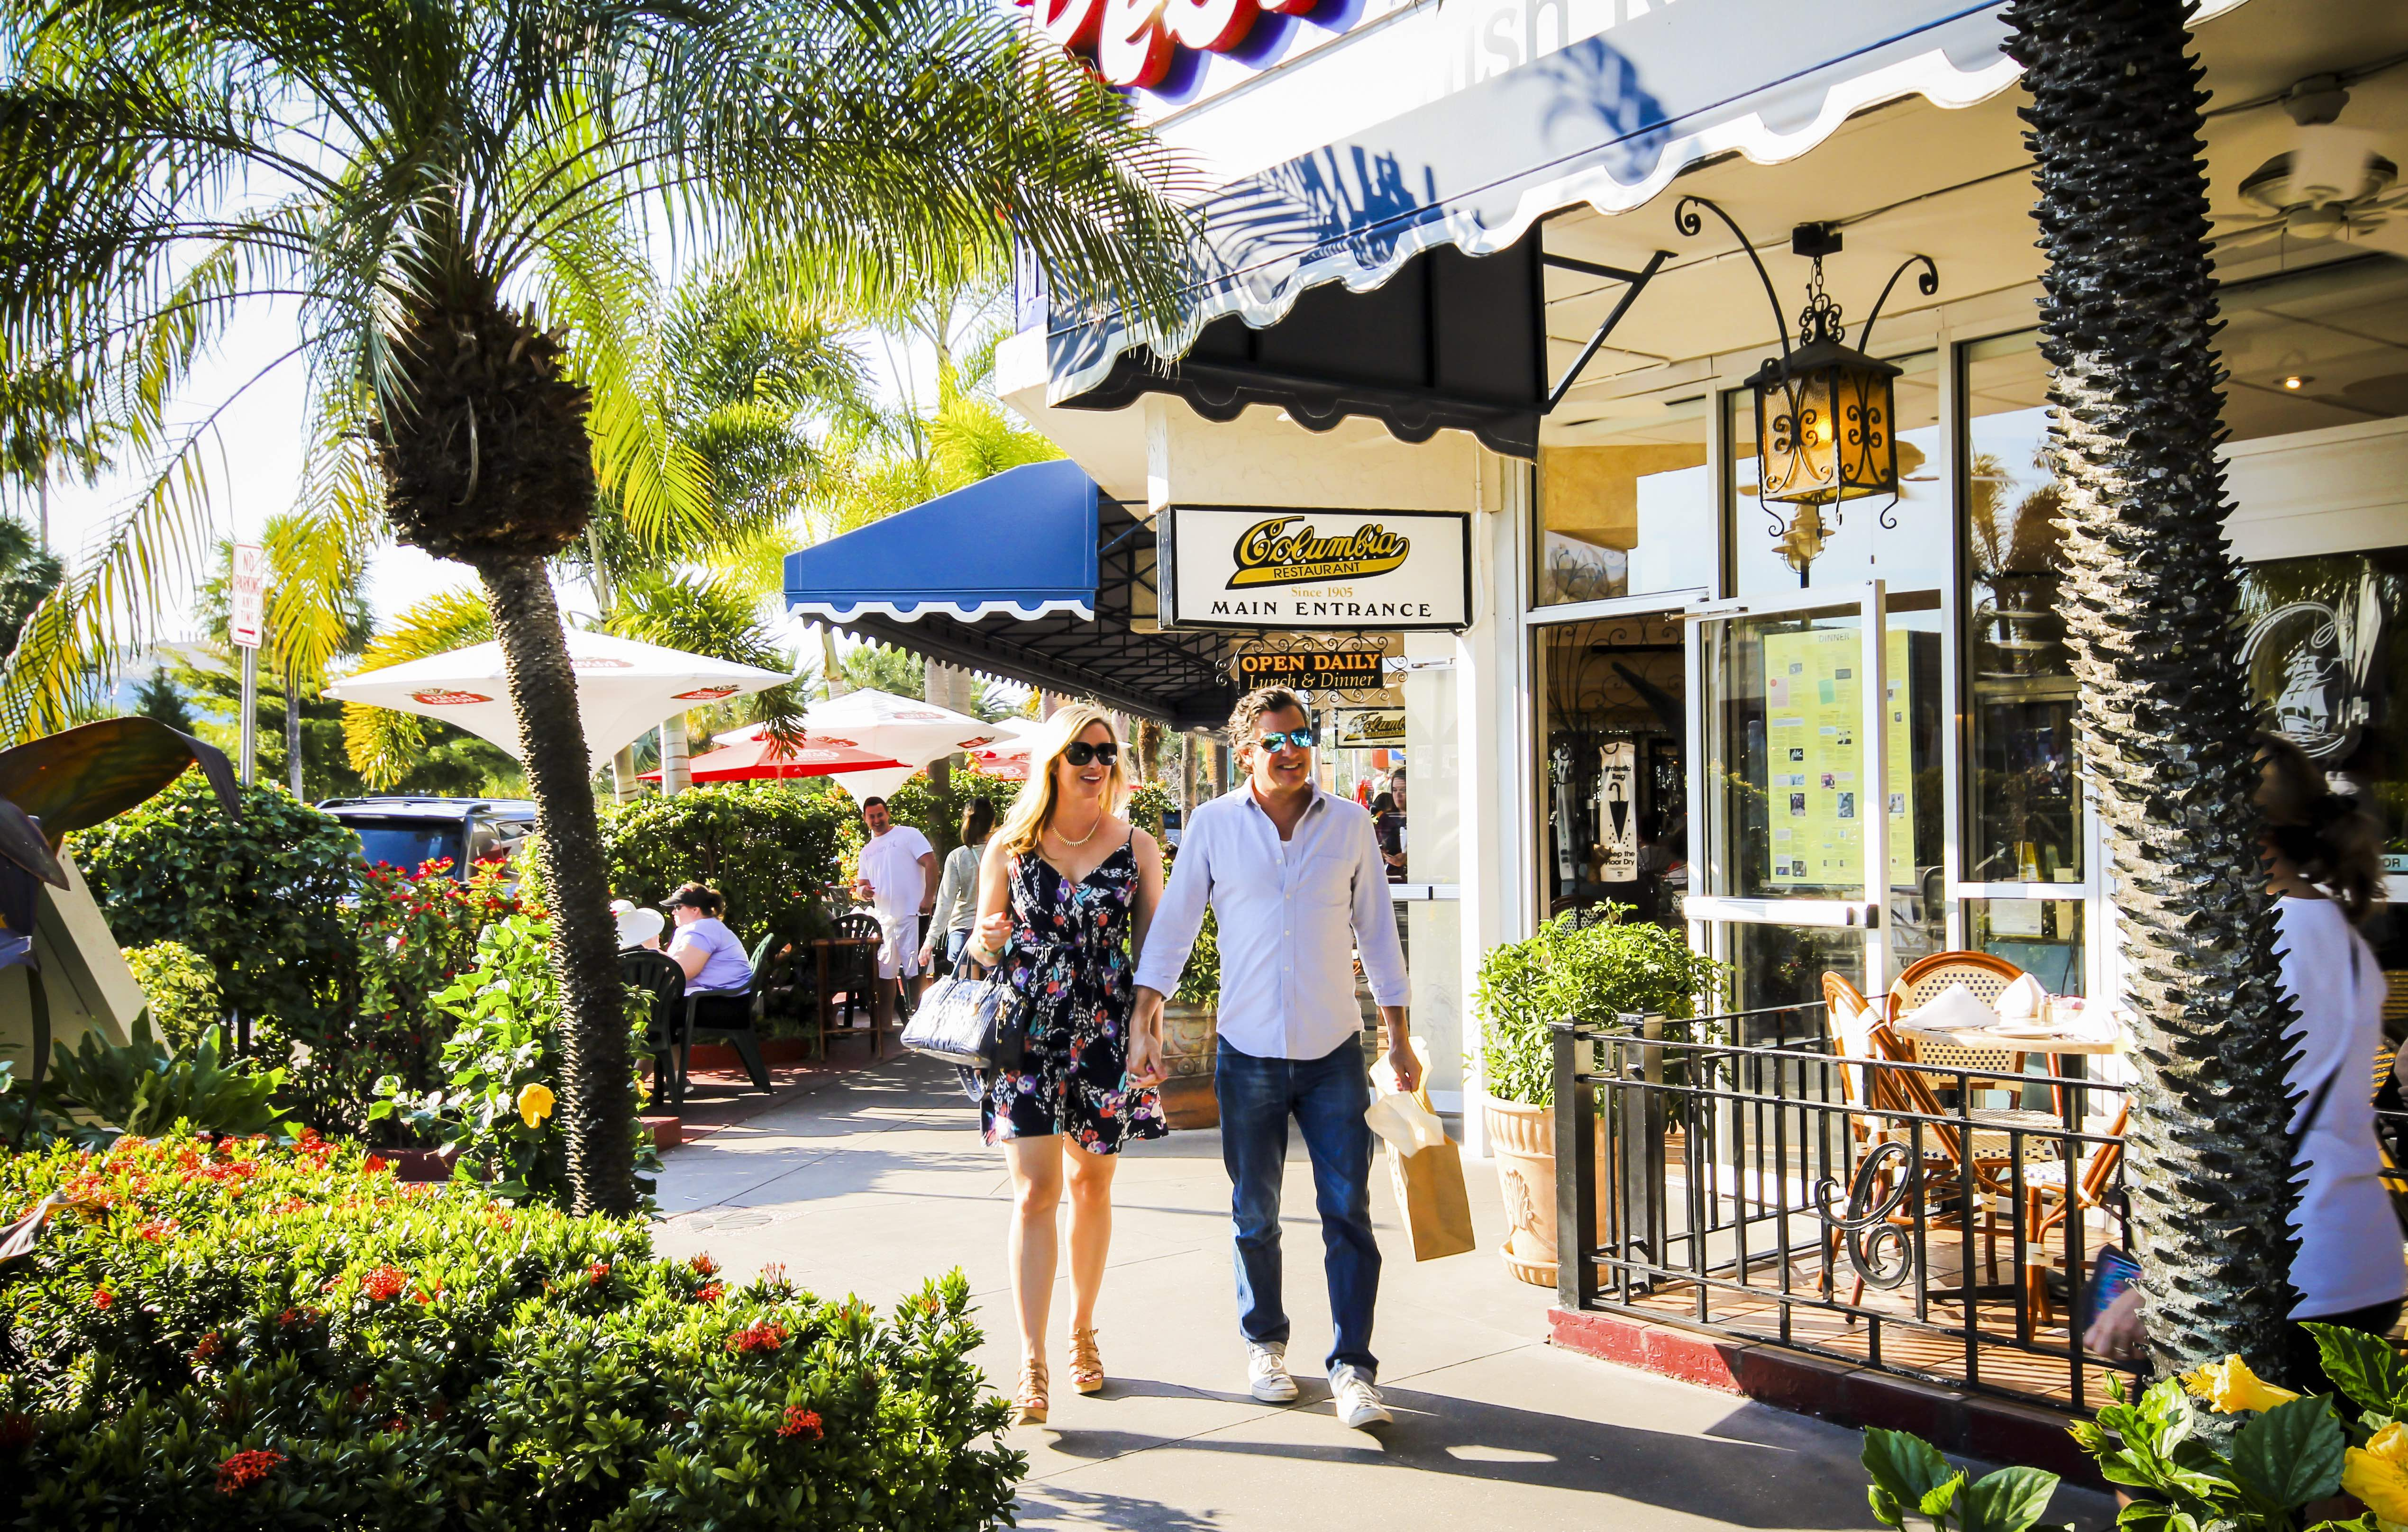 Shopping at St. Armands Circle in Sarasota, Florida